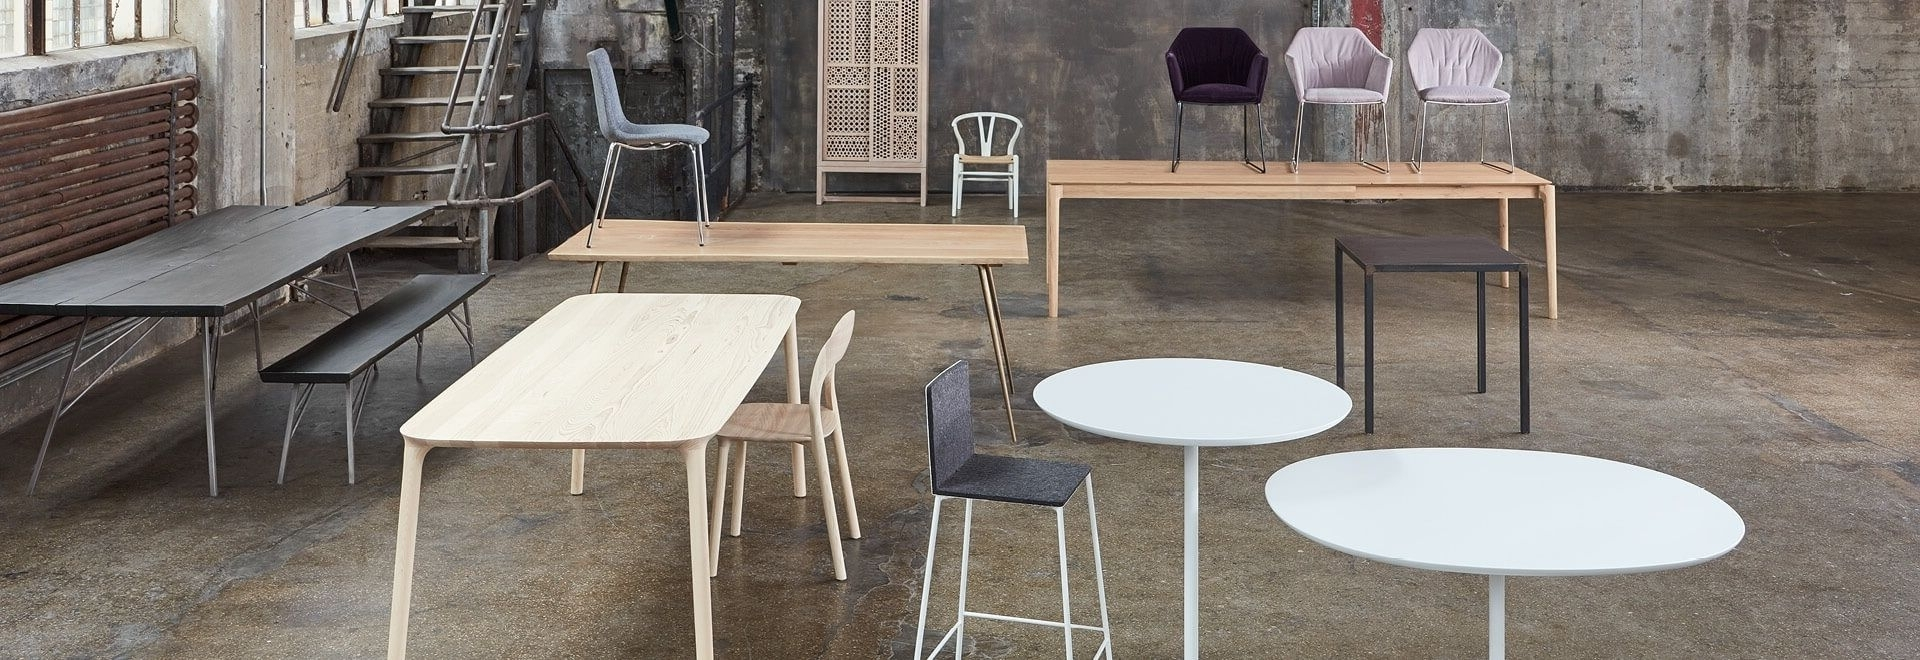 Trendy Handcrafted Dining Room Furniture At Abc Carpet & Home For Artisanal Dining Tables (View 24 of 25)